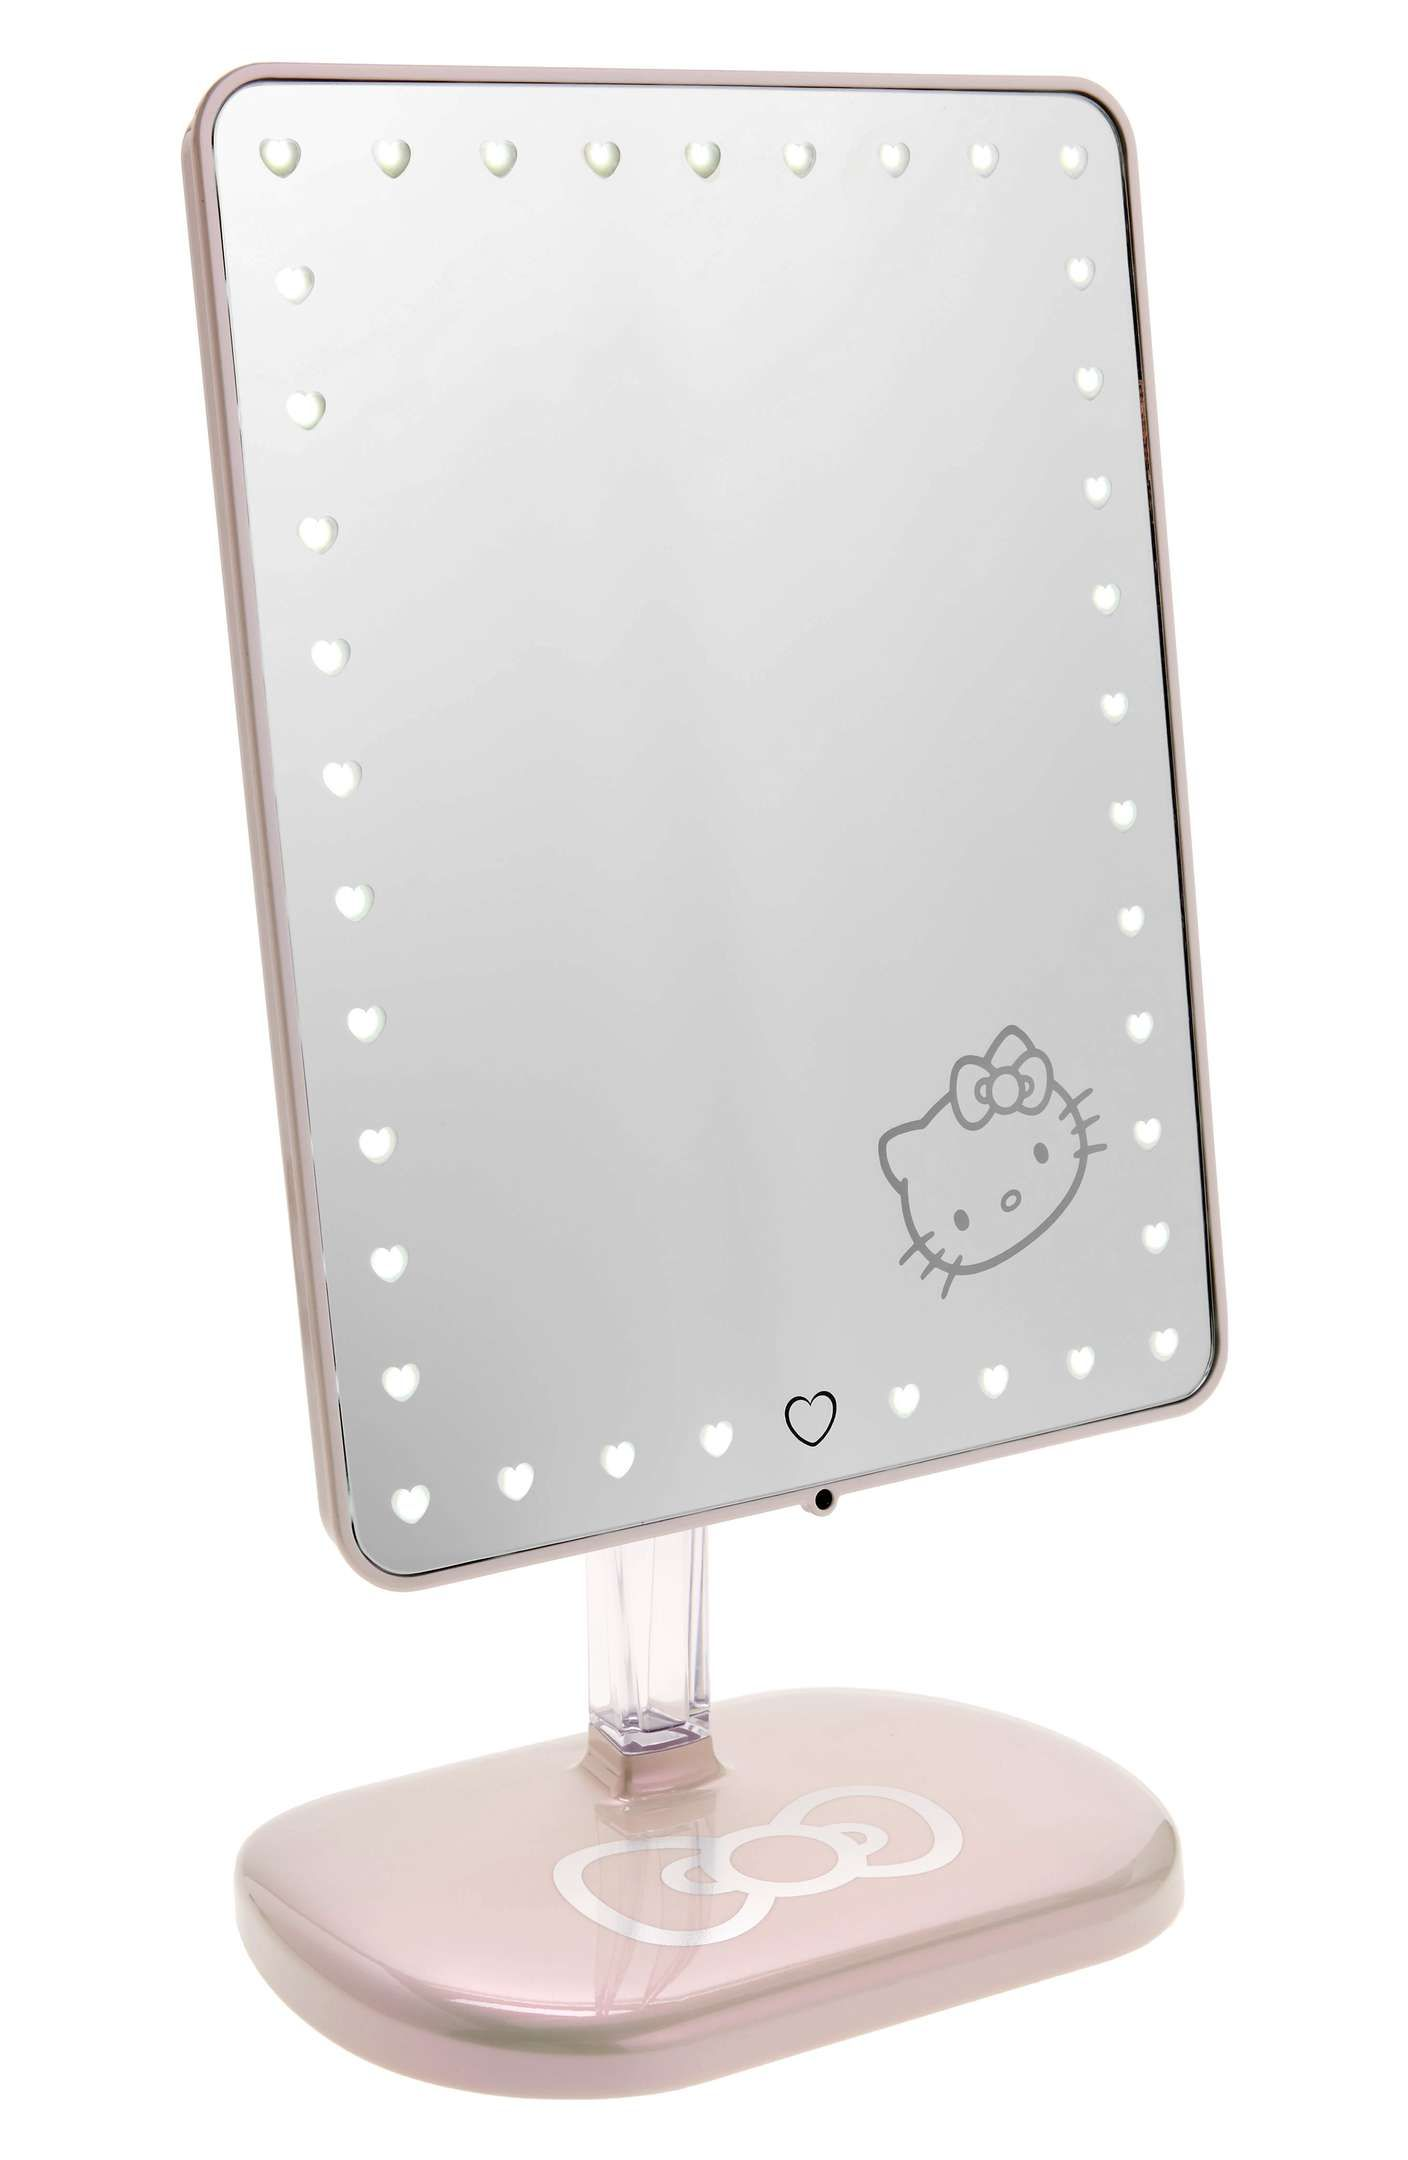 Impressions Vanity Co Hello Kitty Edition Touch Pro Led Makeup